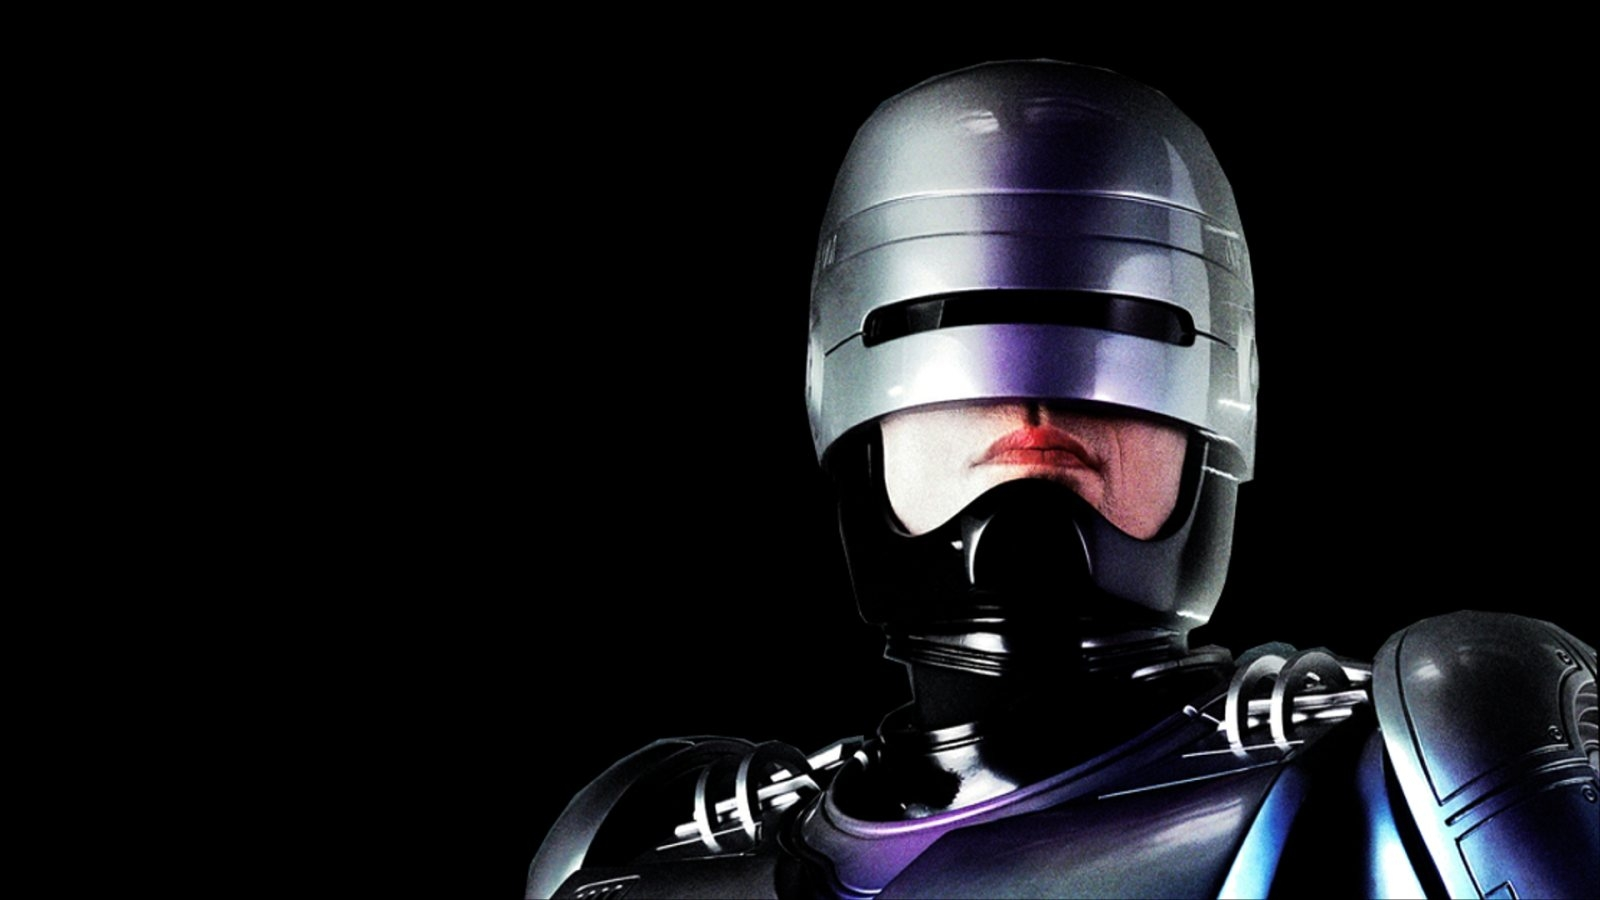 robocop (1987) wallpaper and background image | 1600x900 | id:417167